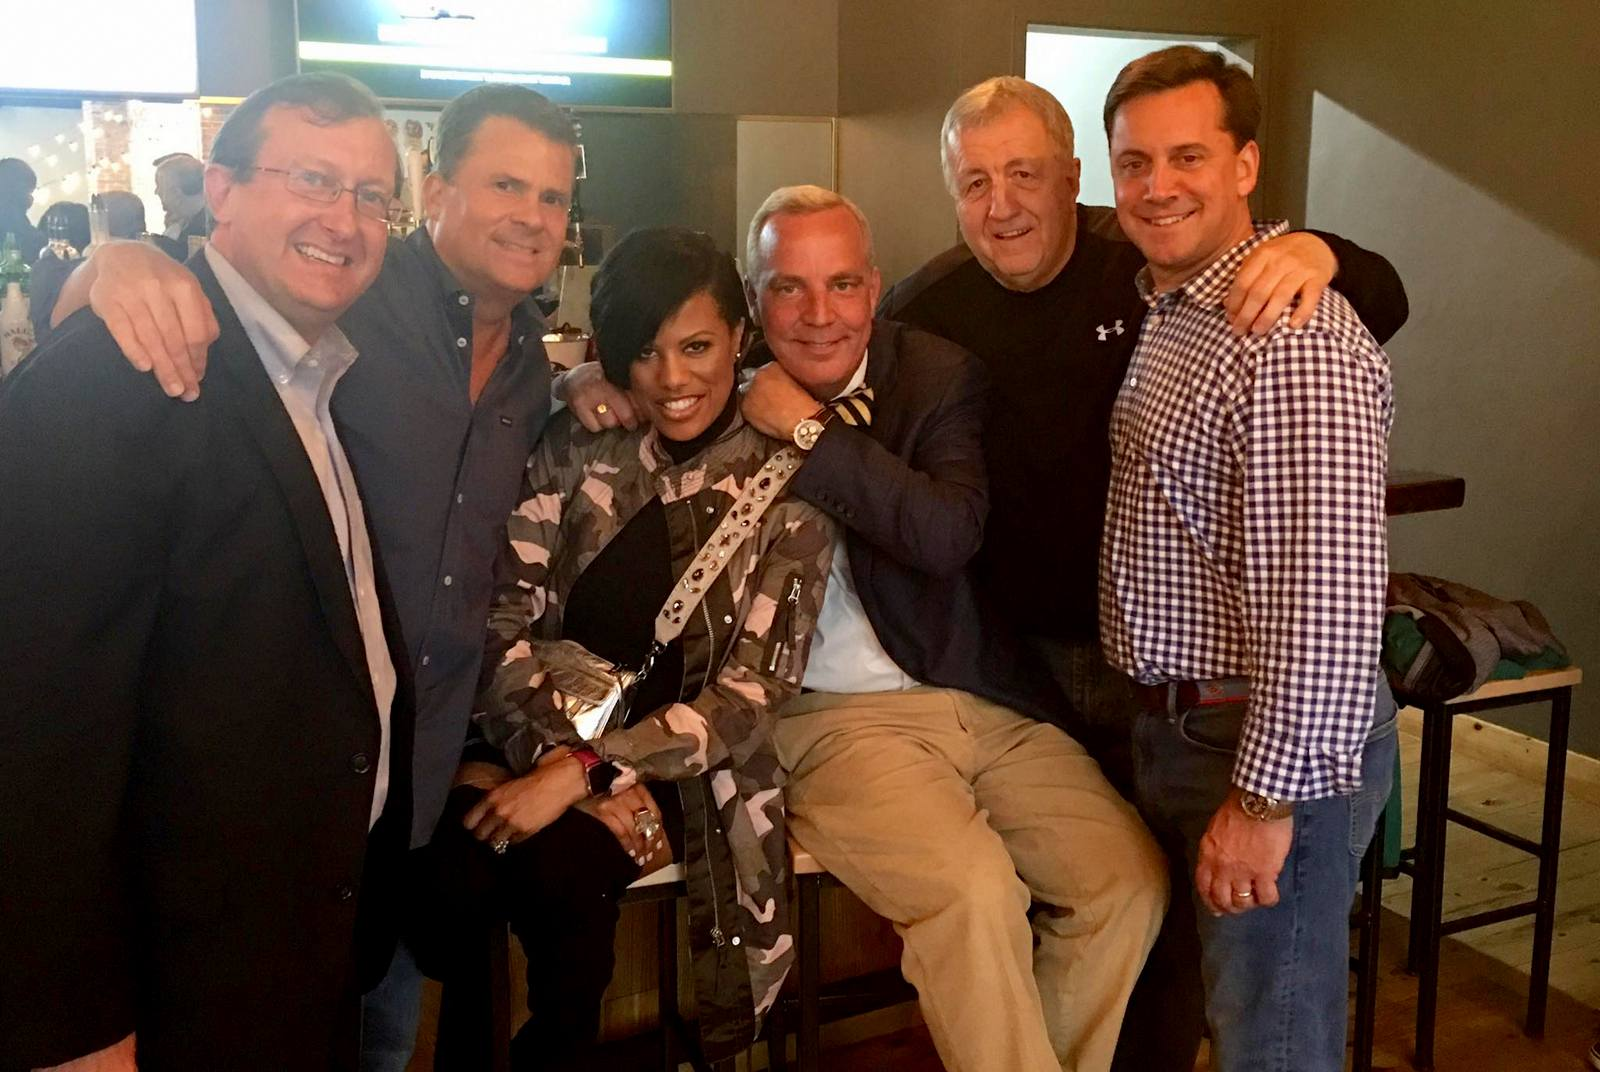 (Joseph Woolman (second from left) last year celebrating the opening of the Crossbar der Biergarten with Steve Fogleman, Stephanie Rawlings-Blake, Peter Auchincloss, Ed Reisnger and Brian McComas. (Facebook)